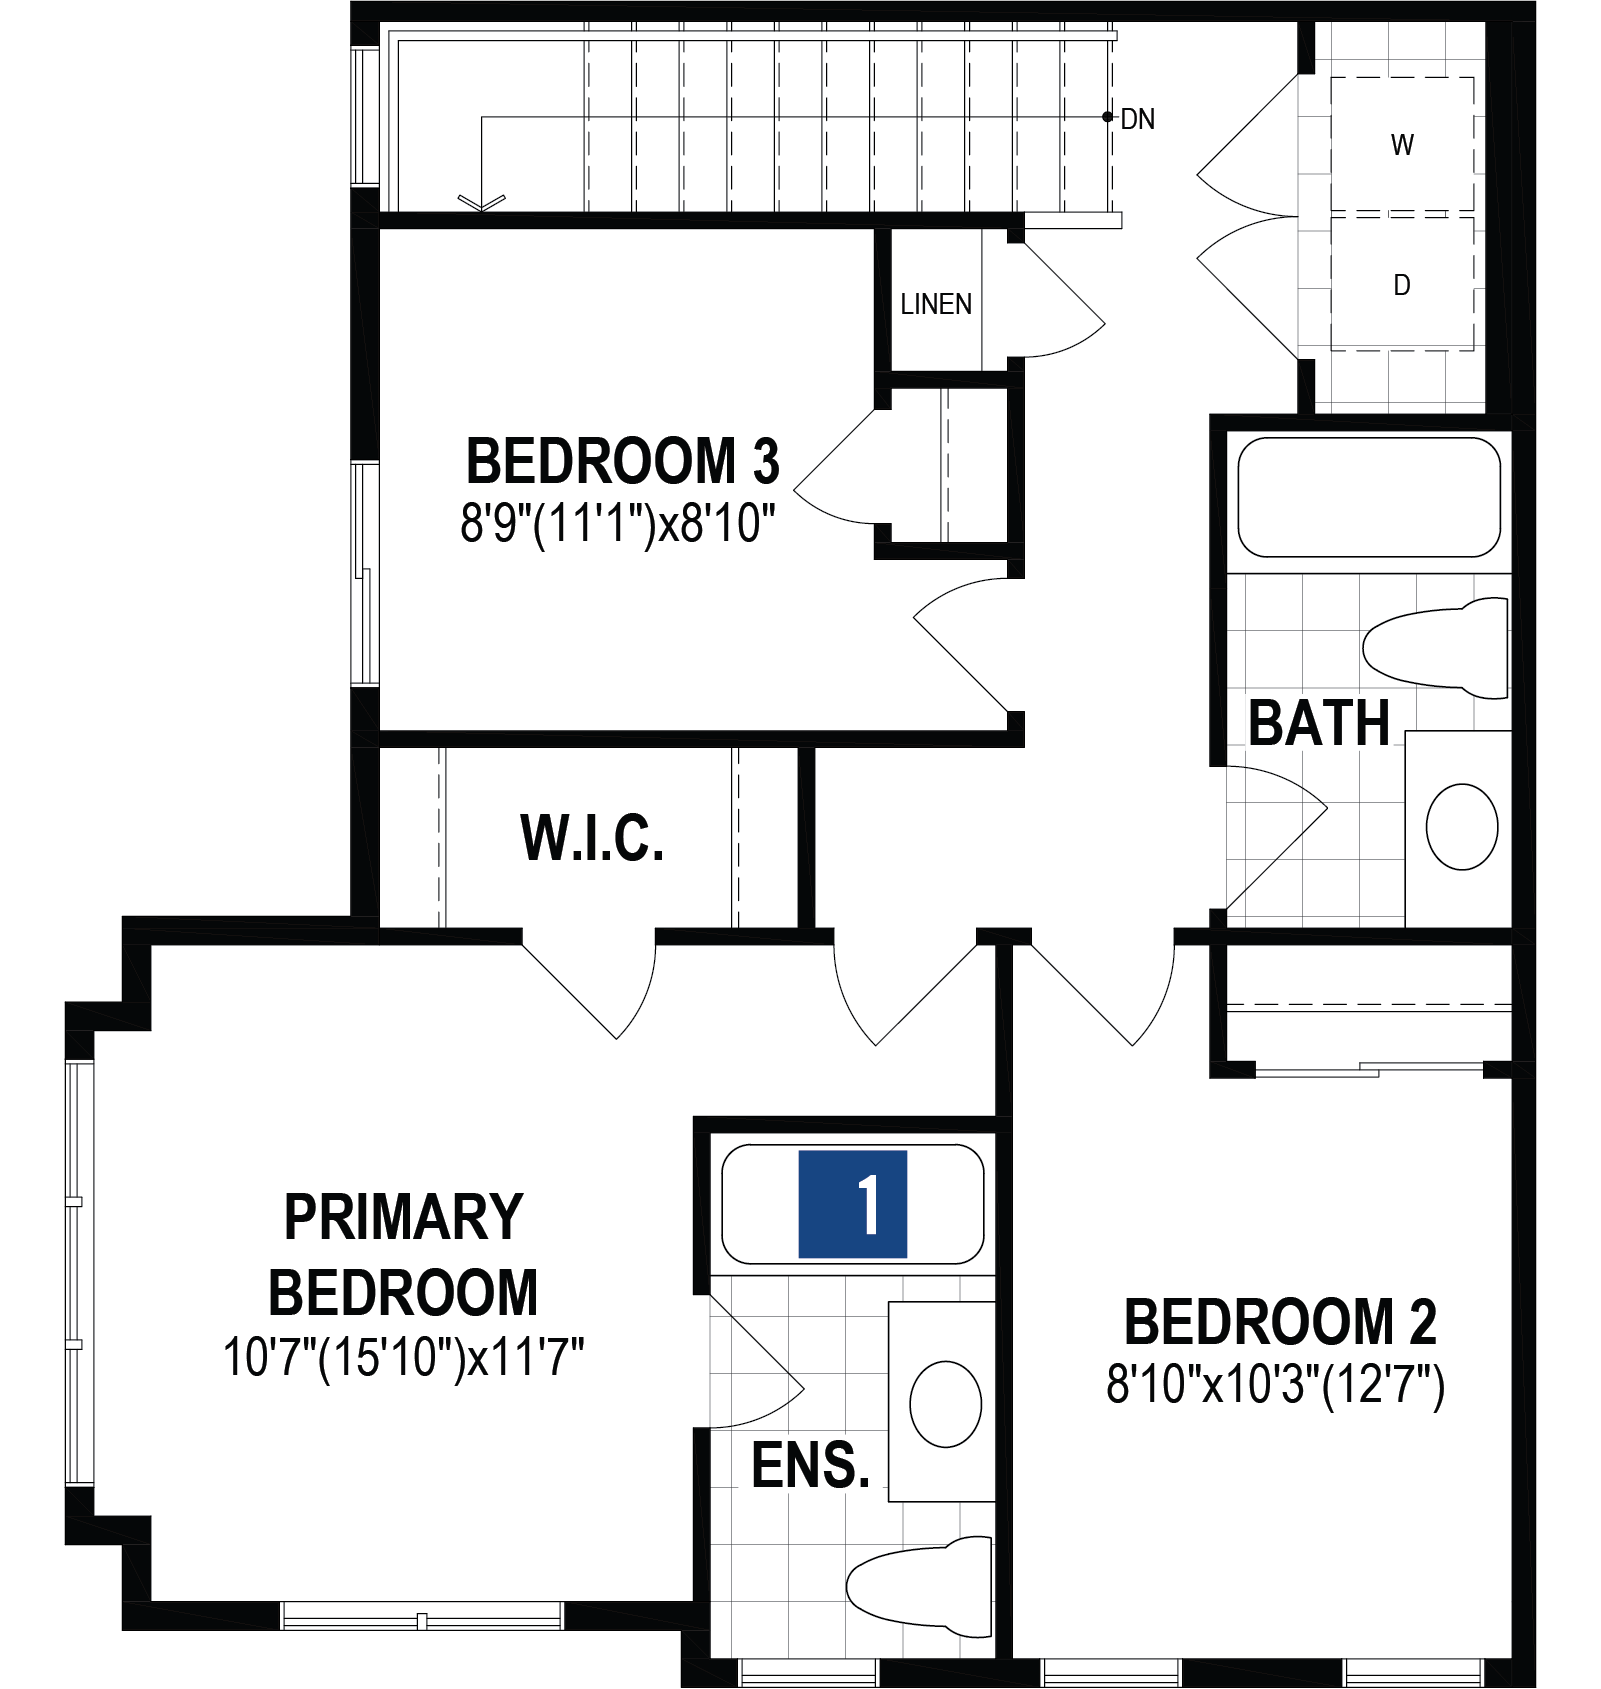 Alize Corner Plan Floor Plan at Stillwater in Edmonton Alberta by Mattamy Homes